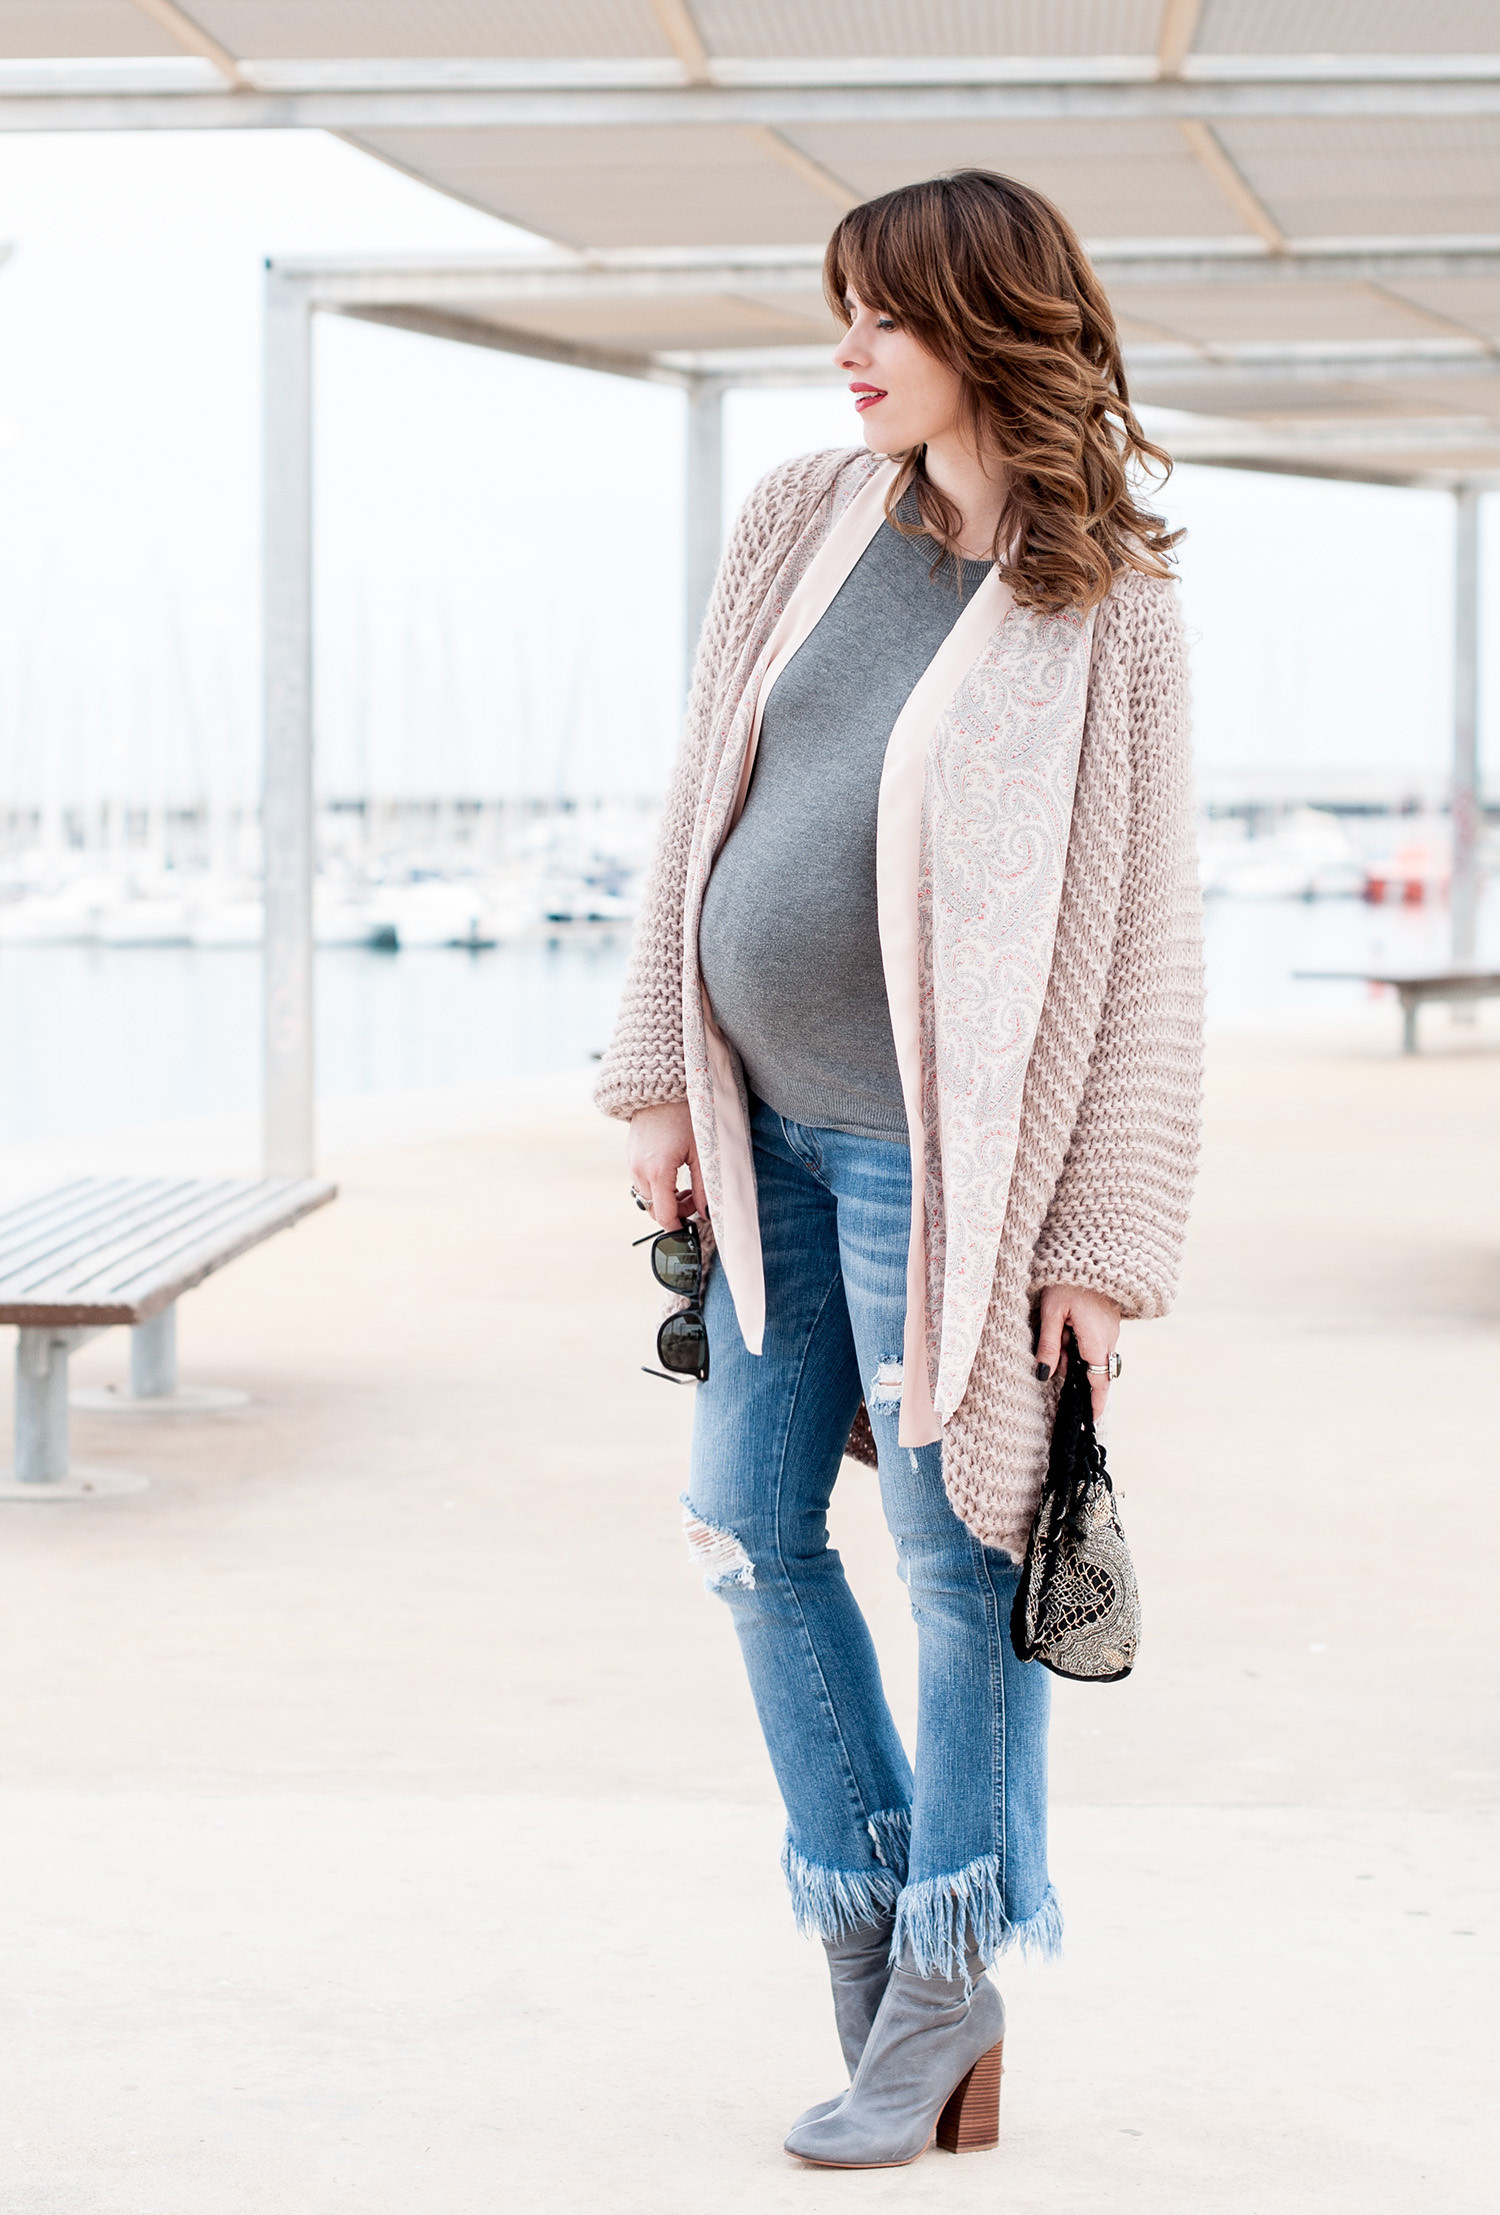 PINK & GREY-13858-macarenagea